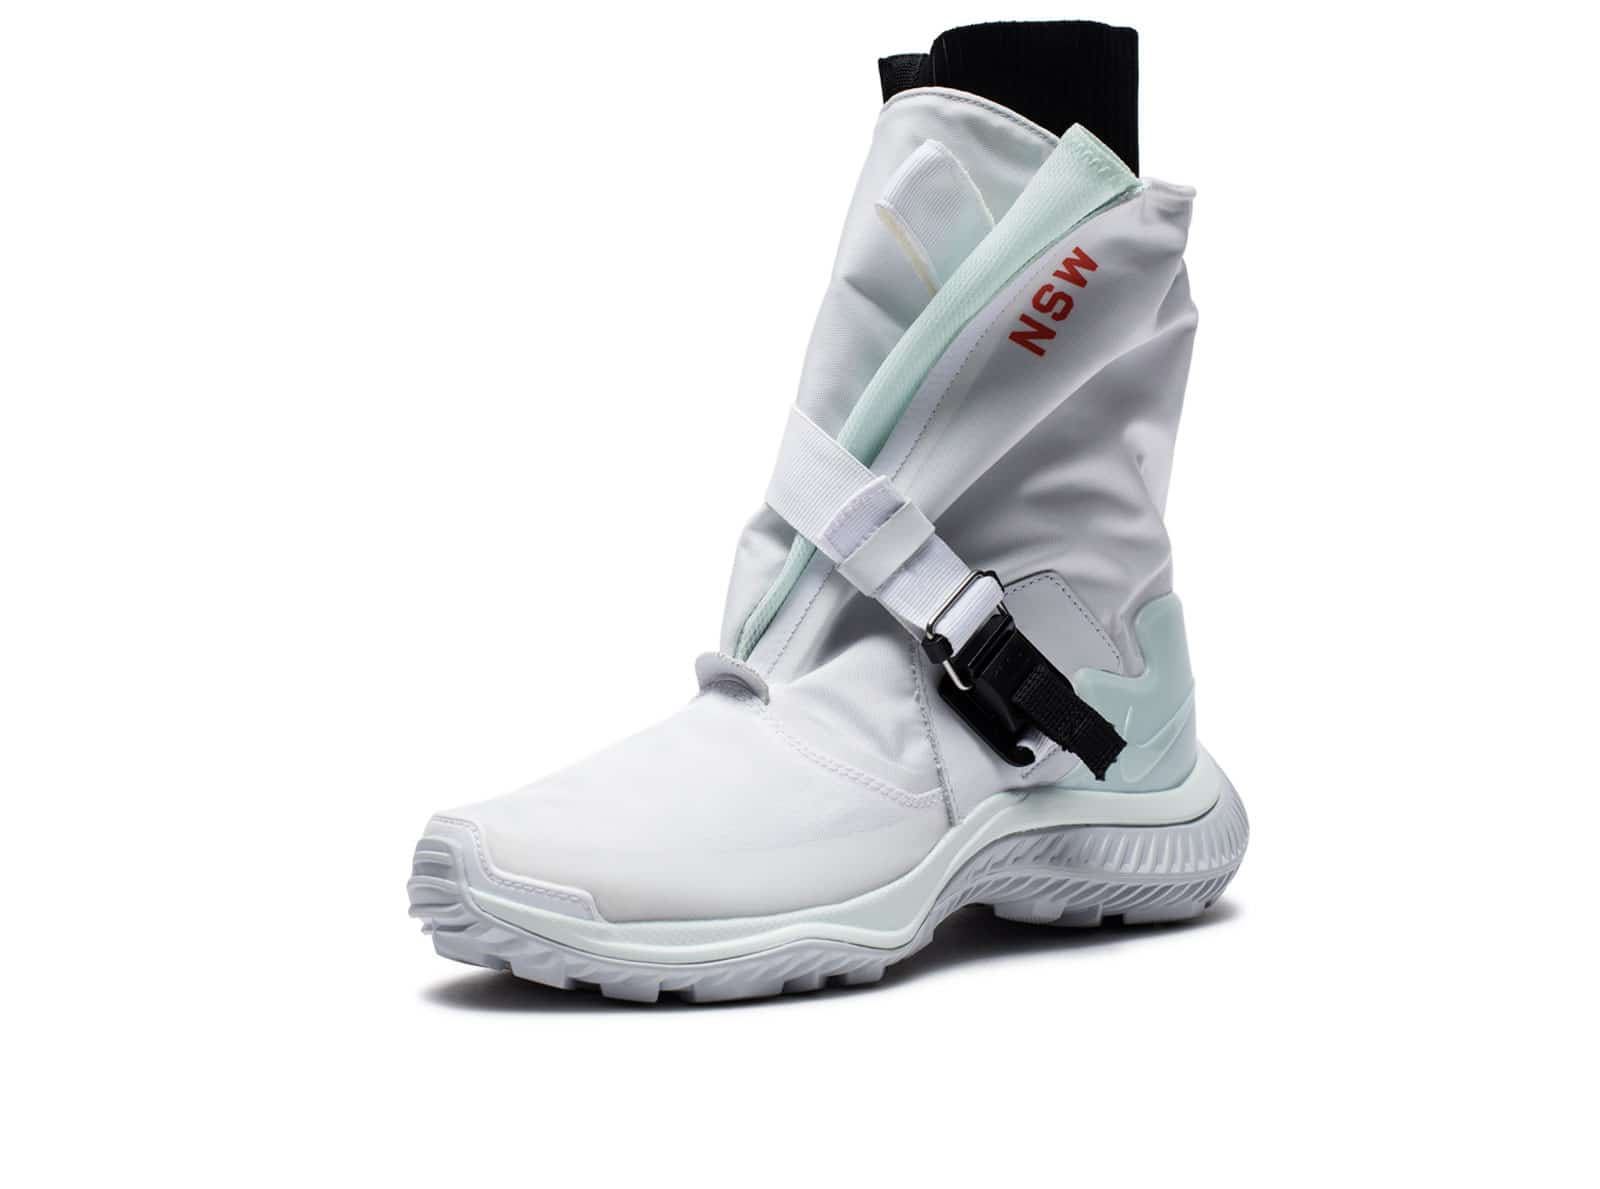 WOMEN'S GAITER BOOT - WHITE/BARELYGREEN/BLACK/PUREPLATINUM